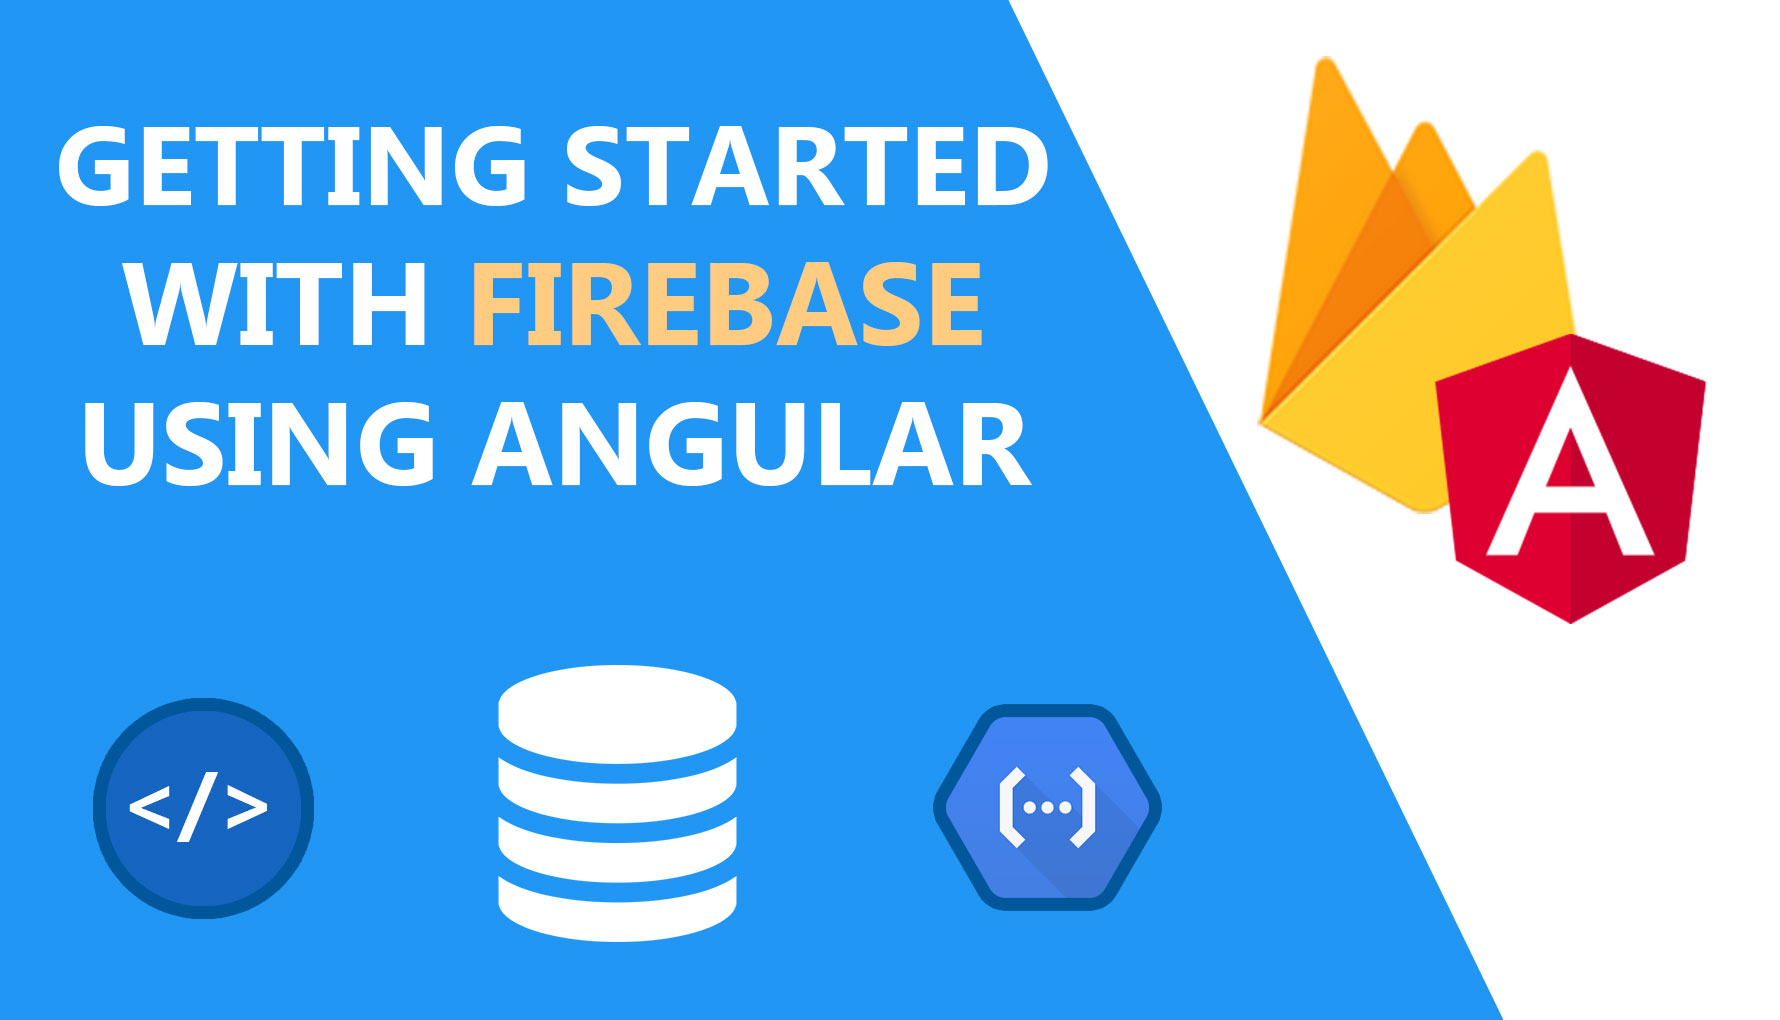 Getting Started with Firebase using AngularJS